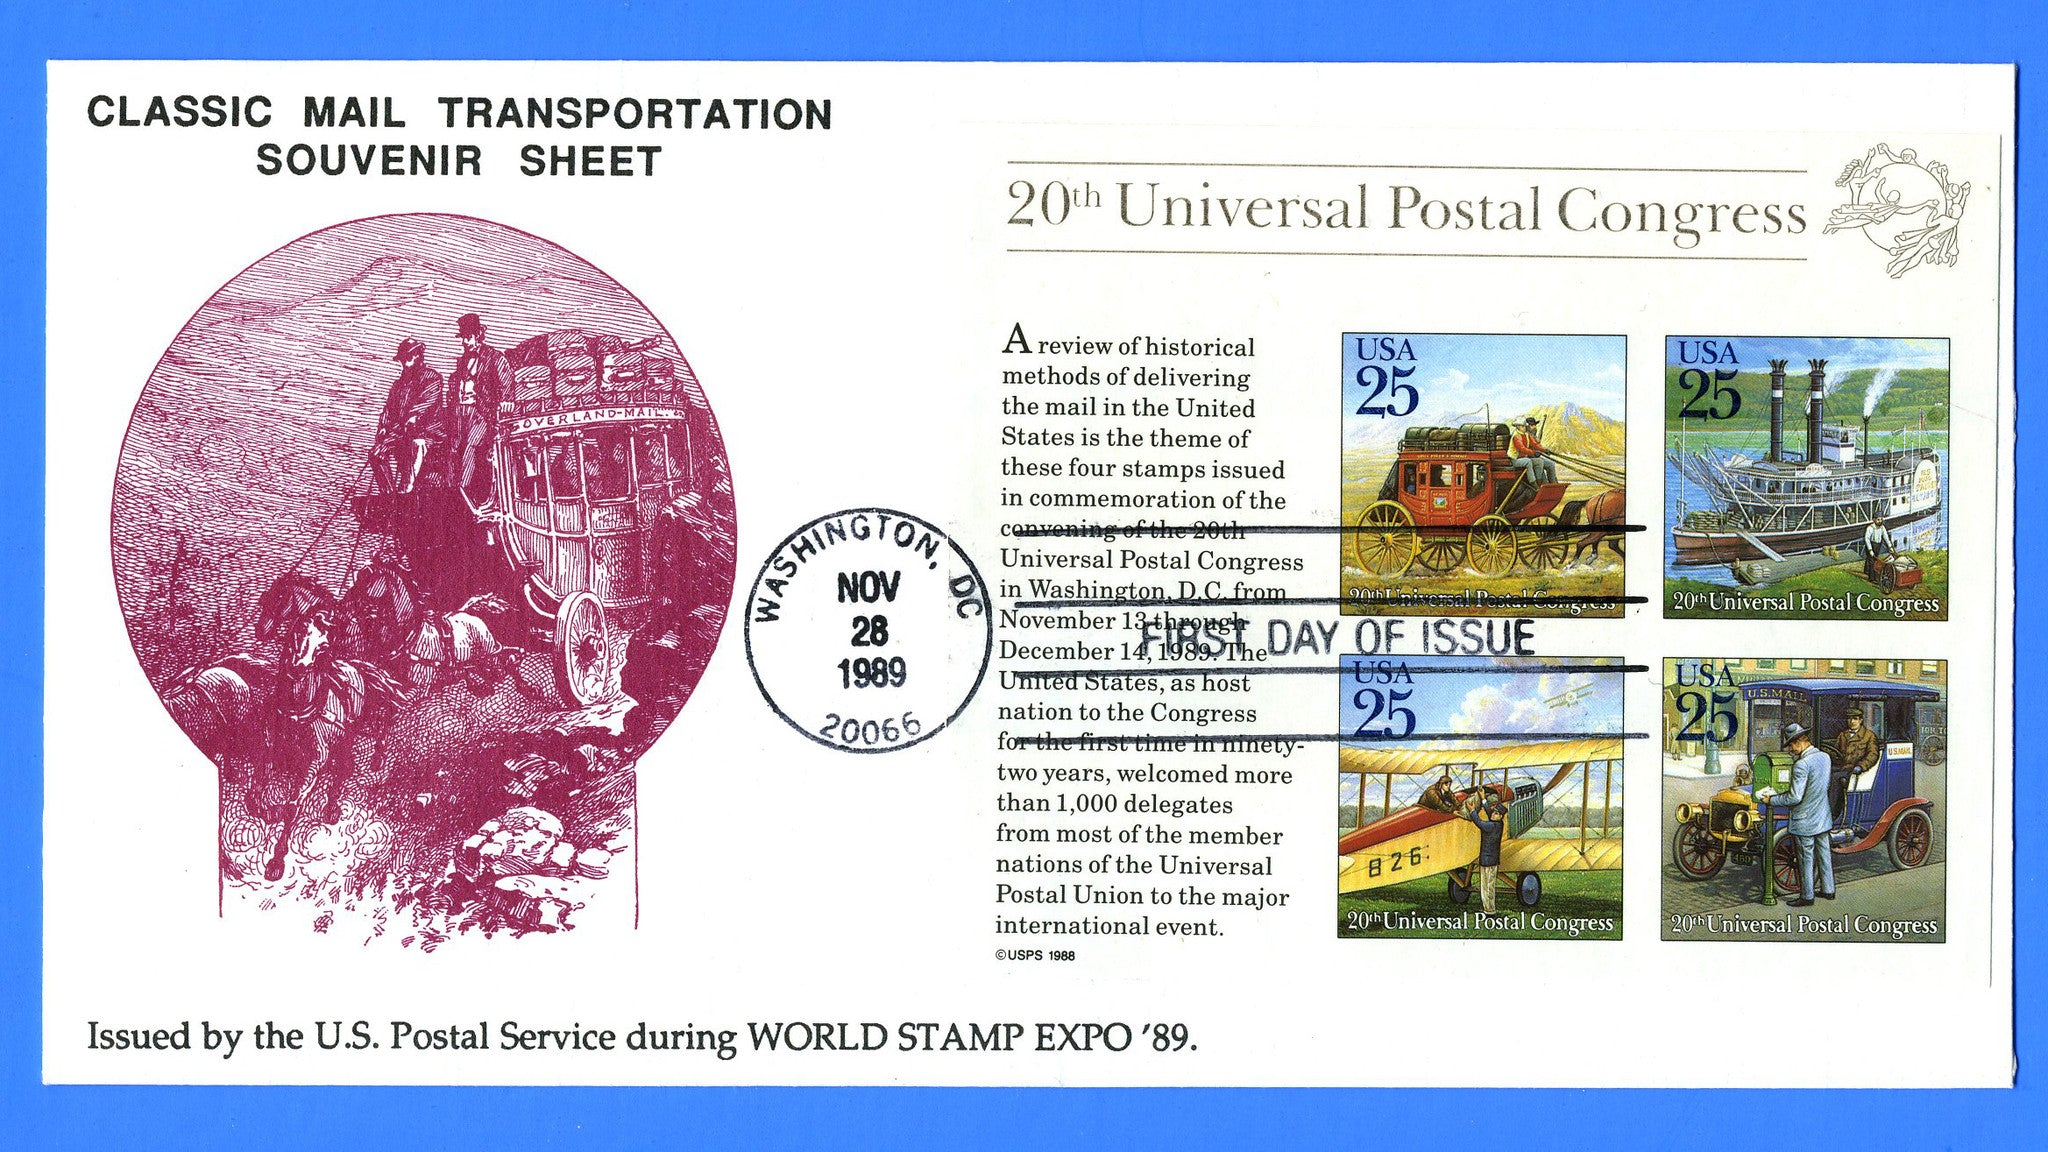 Scott 2438 25c Classic Mail Transportation Souvenir Sheet First Day Cover by KMC Venture